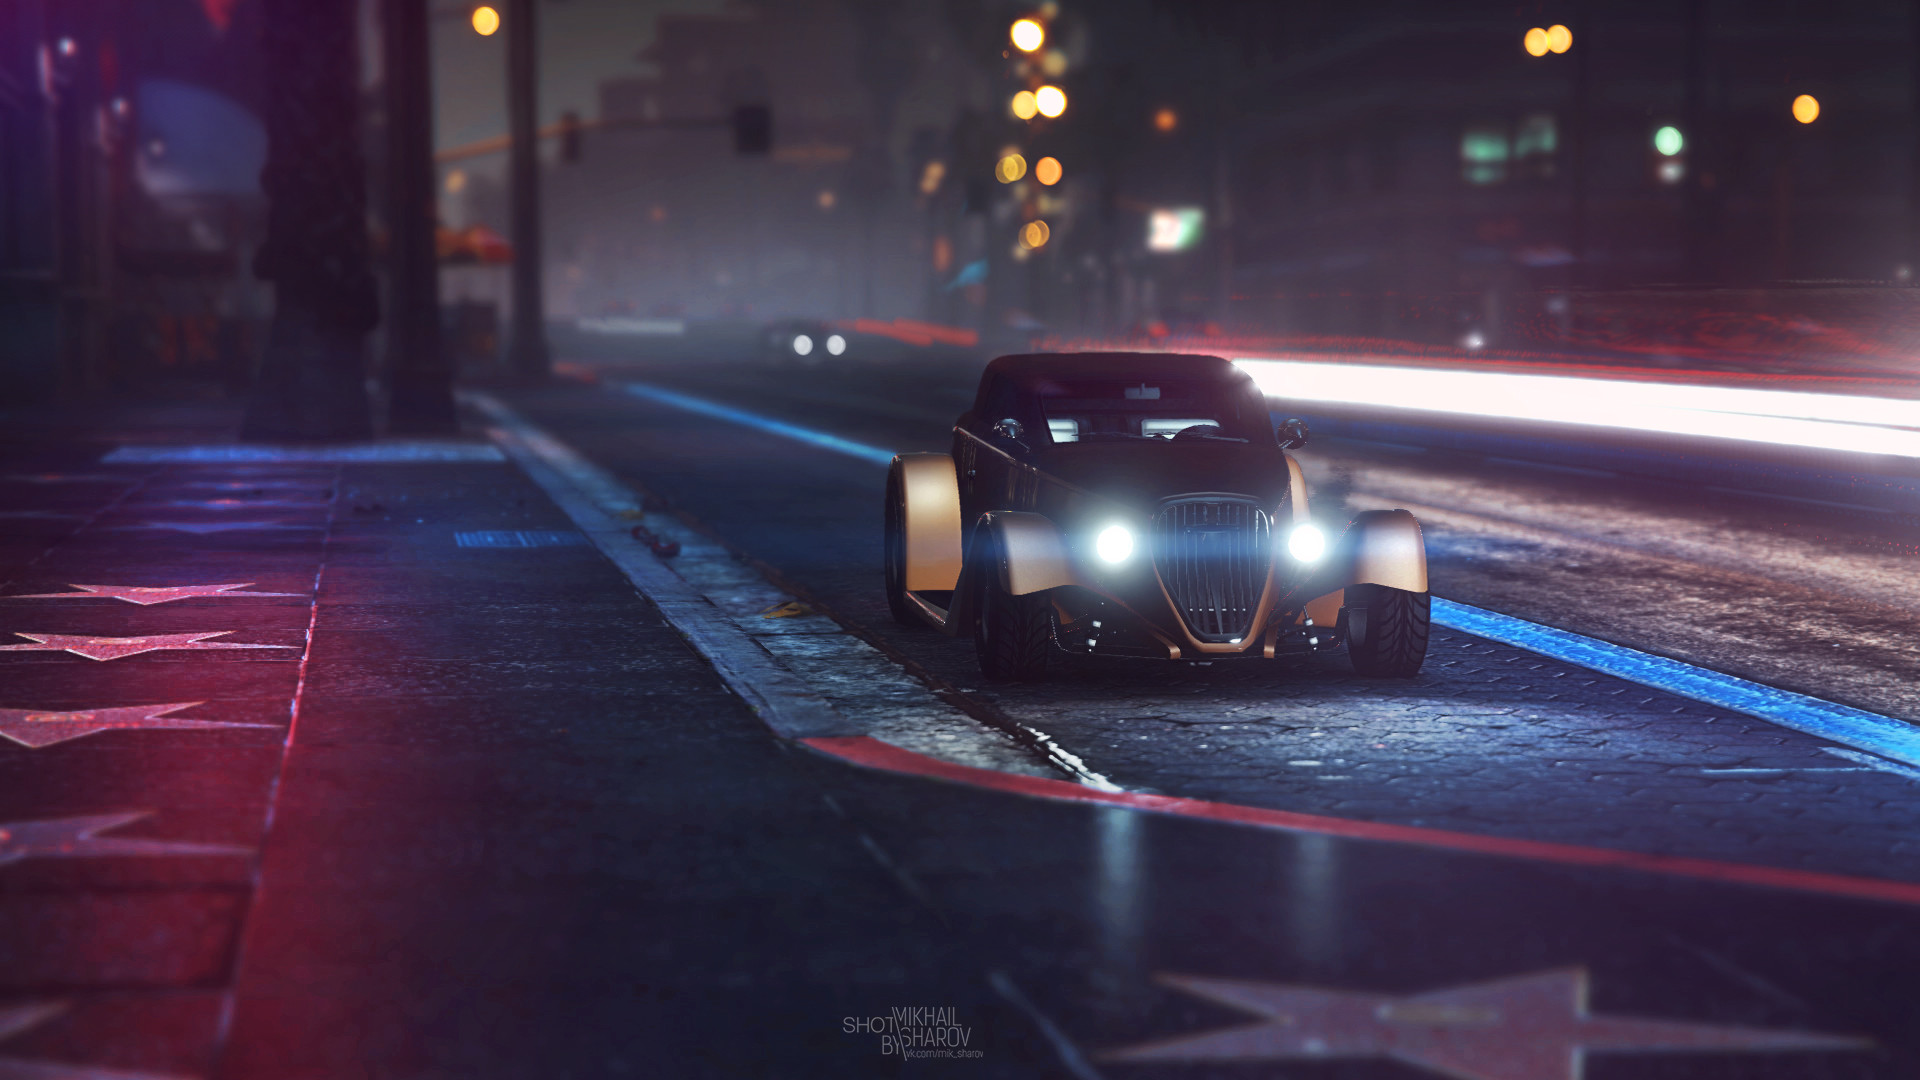 GTA Game Photography by Mikhail Sharov